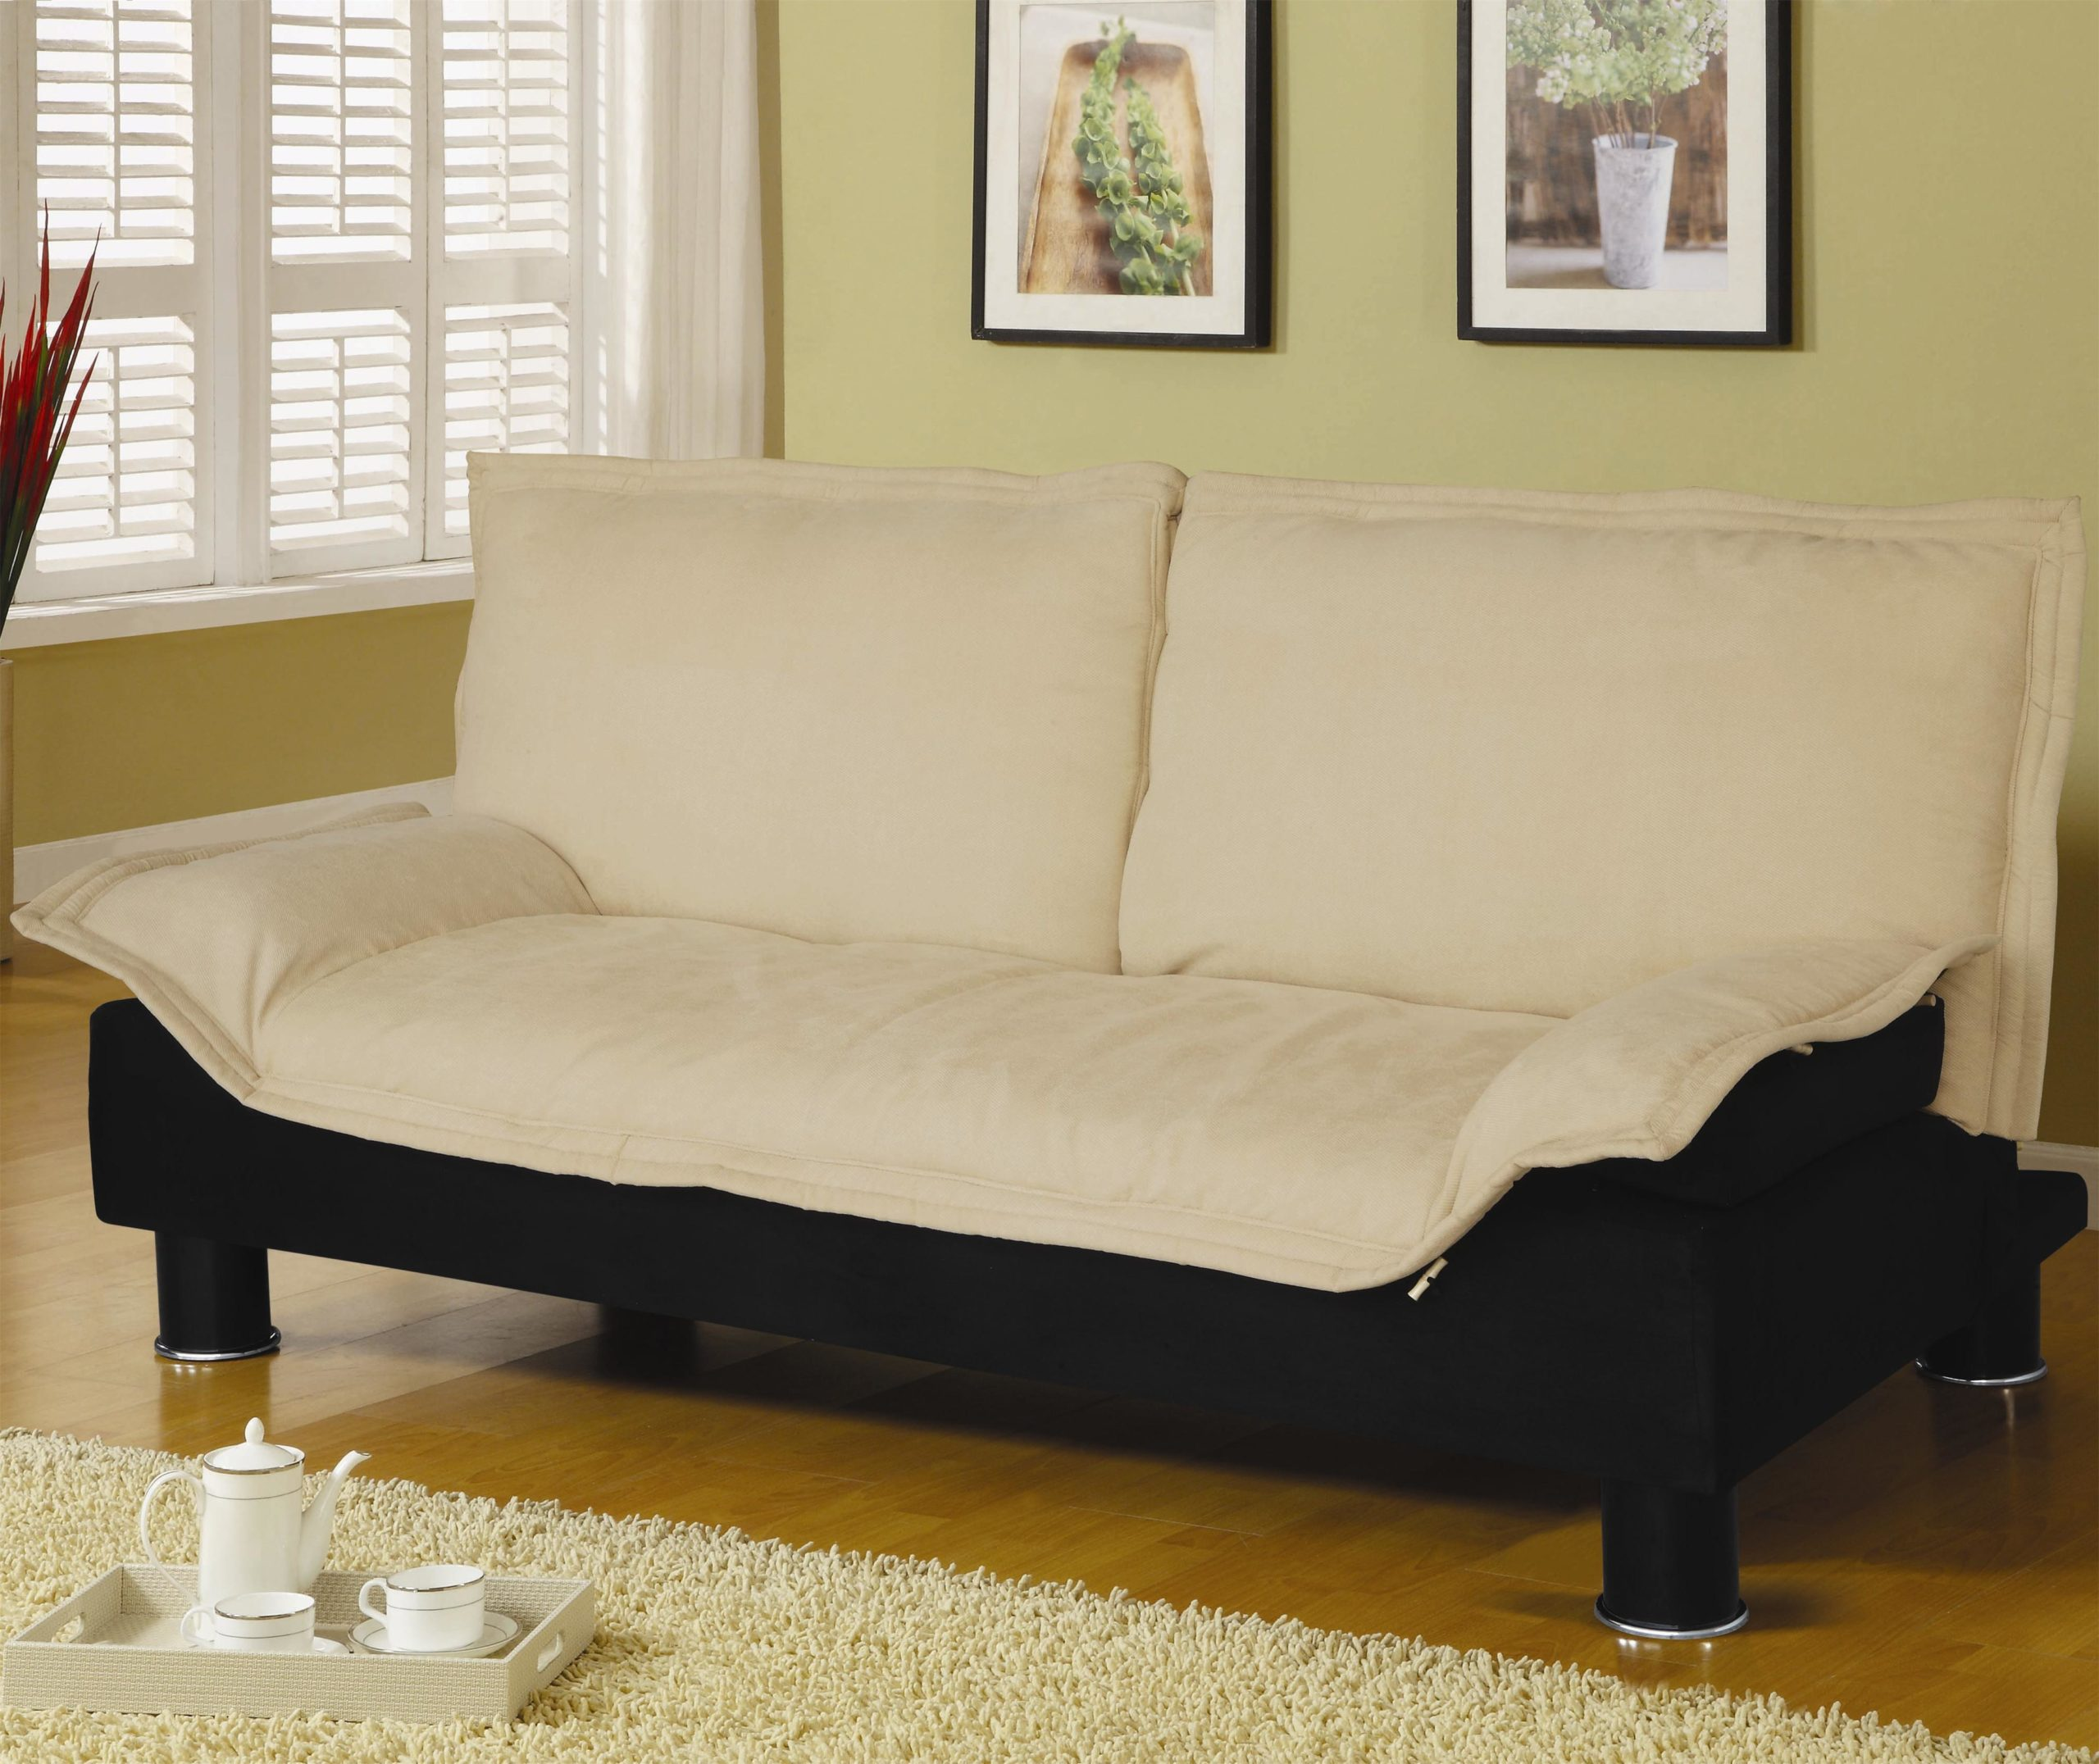 White Casual Convertible Sofa Bed in Up Position